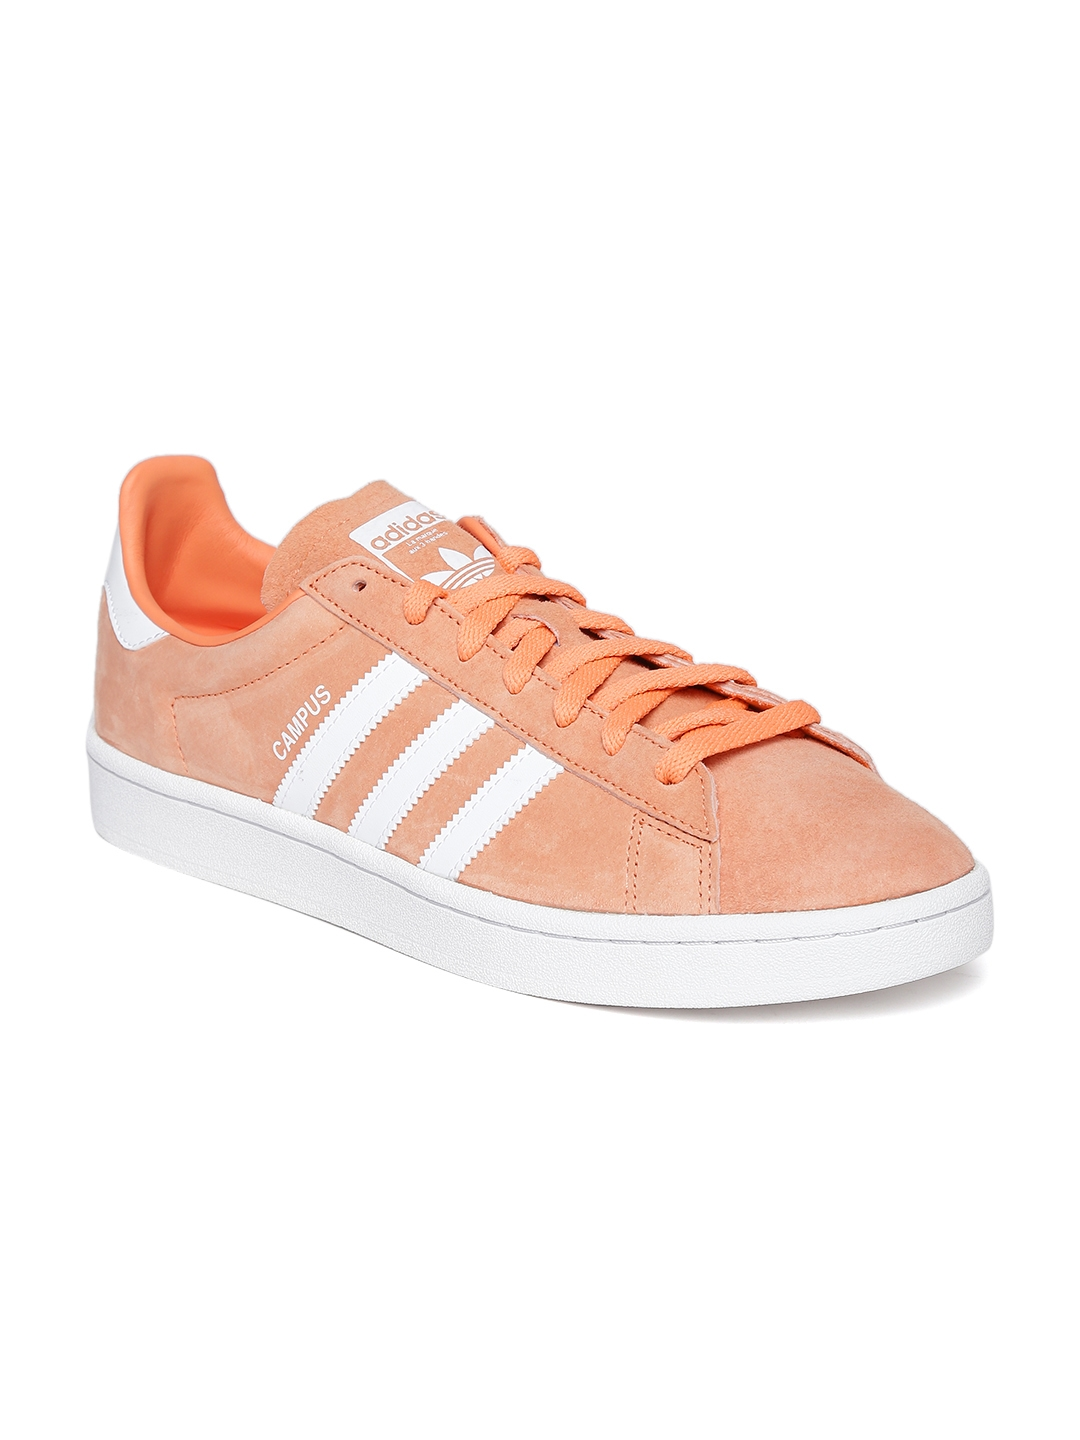 Buy ADIDAS Originals Men Peach Coloured Campus Leather Sneakers ... 58aac7d66